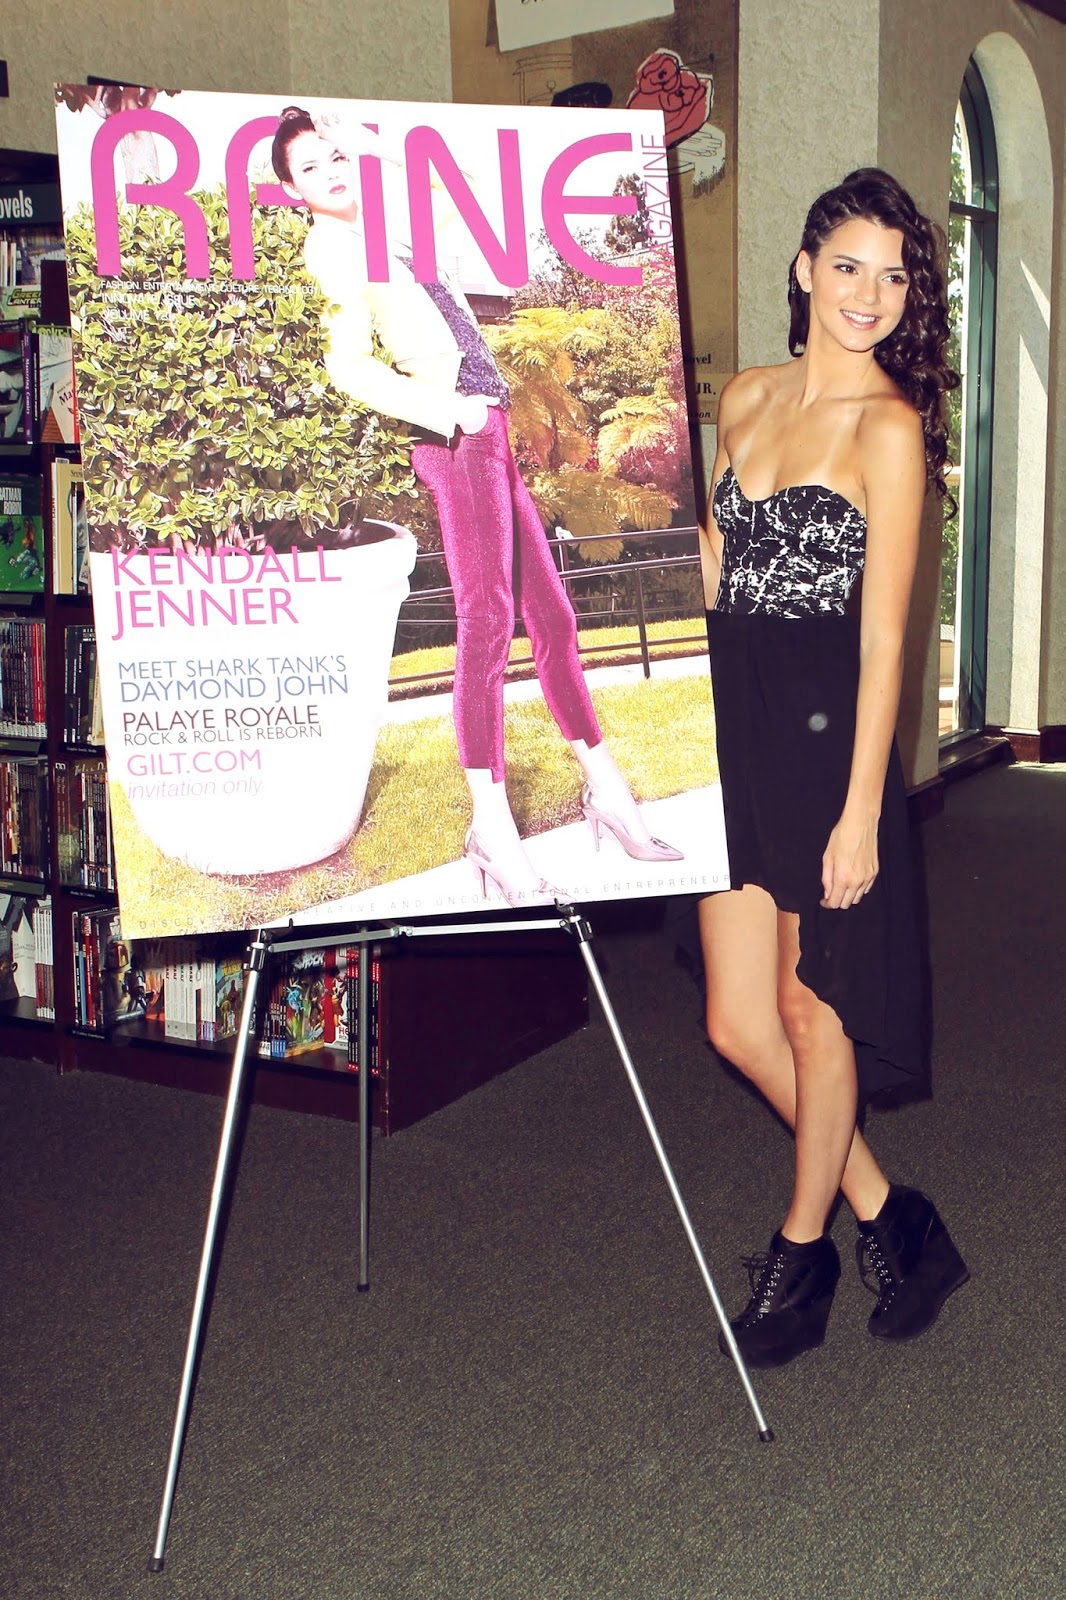 05 - Signing and Autograph RAINE Magazine at Barnes & Noble on August 18, 2012